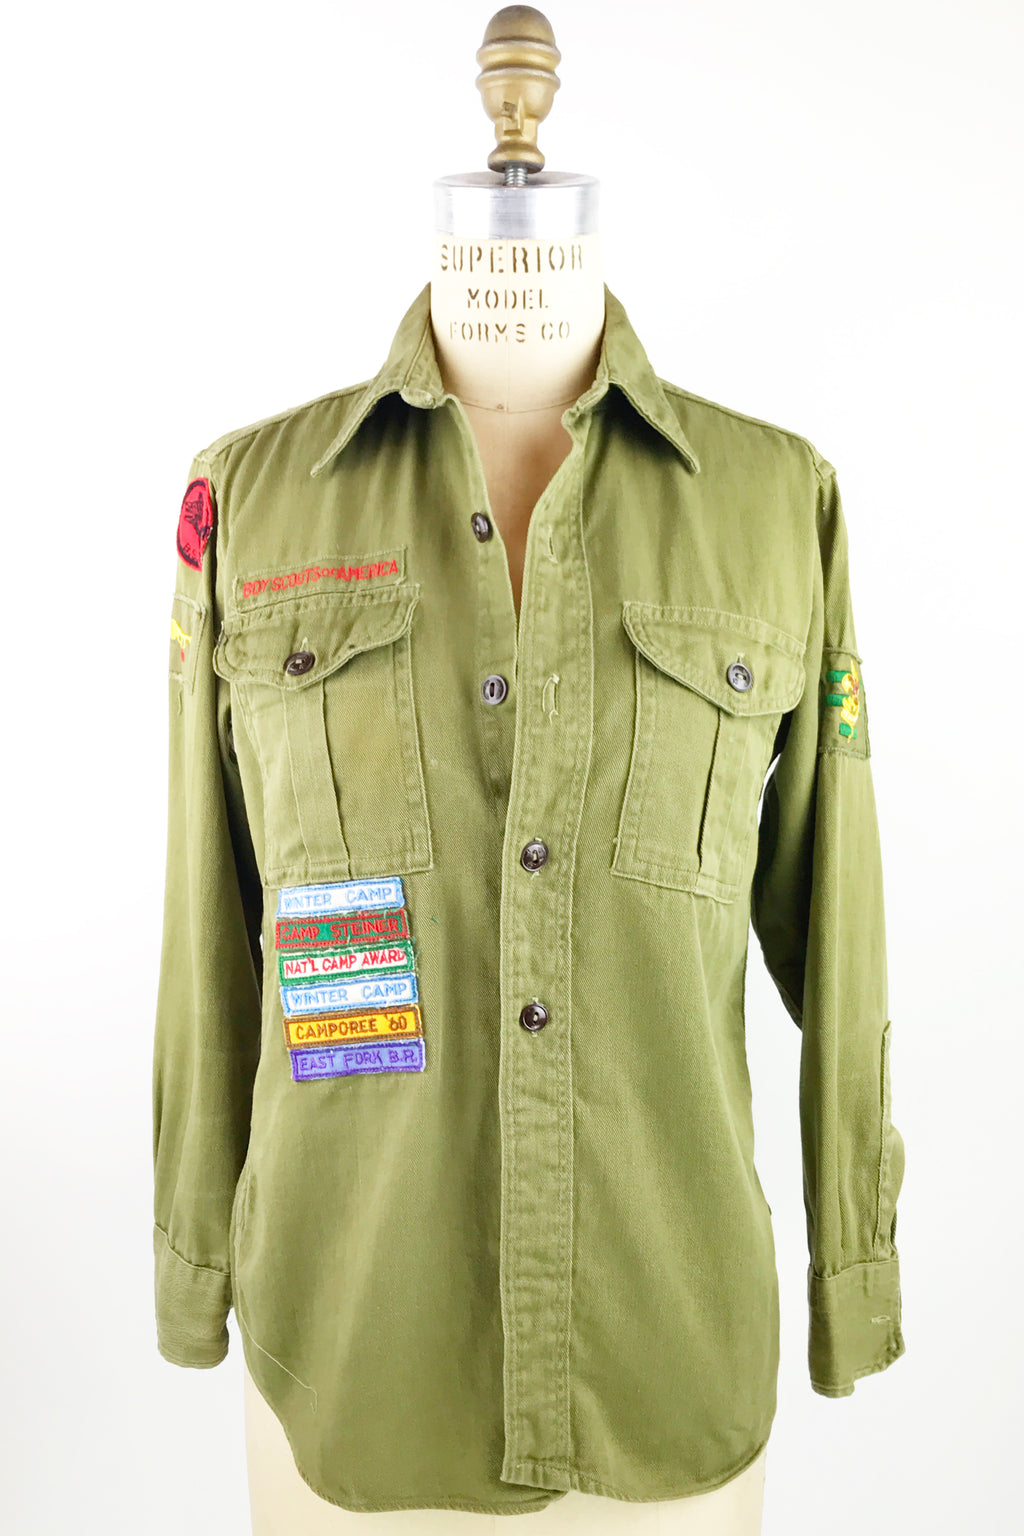 Boy Scout Shirt